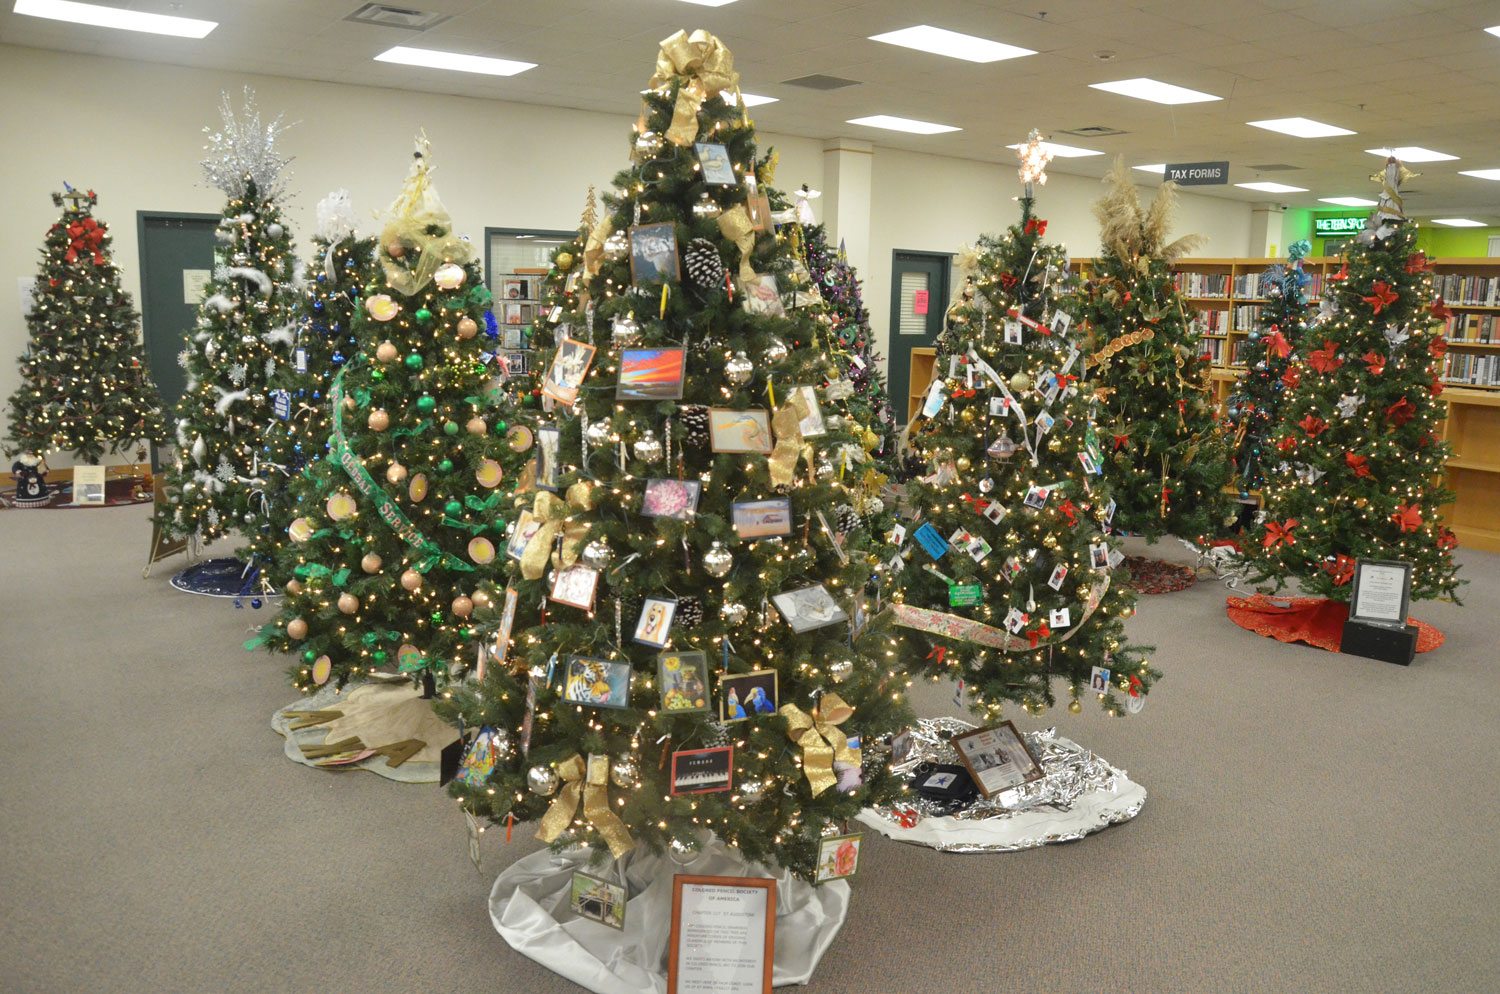 The Flagler County Public Library opens its annual Festival of Trees Friday at 6 p.m. See details below. (© FlaglerLive)